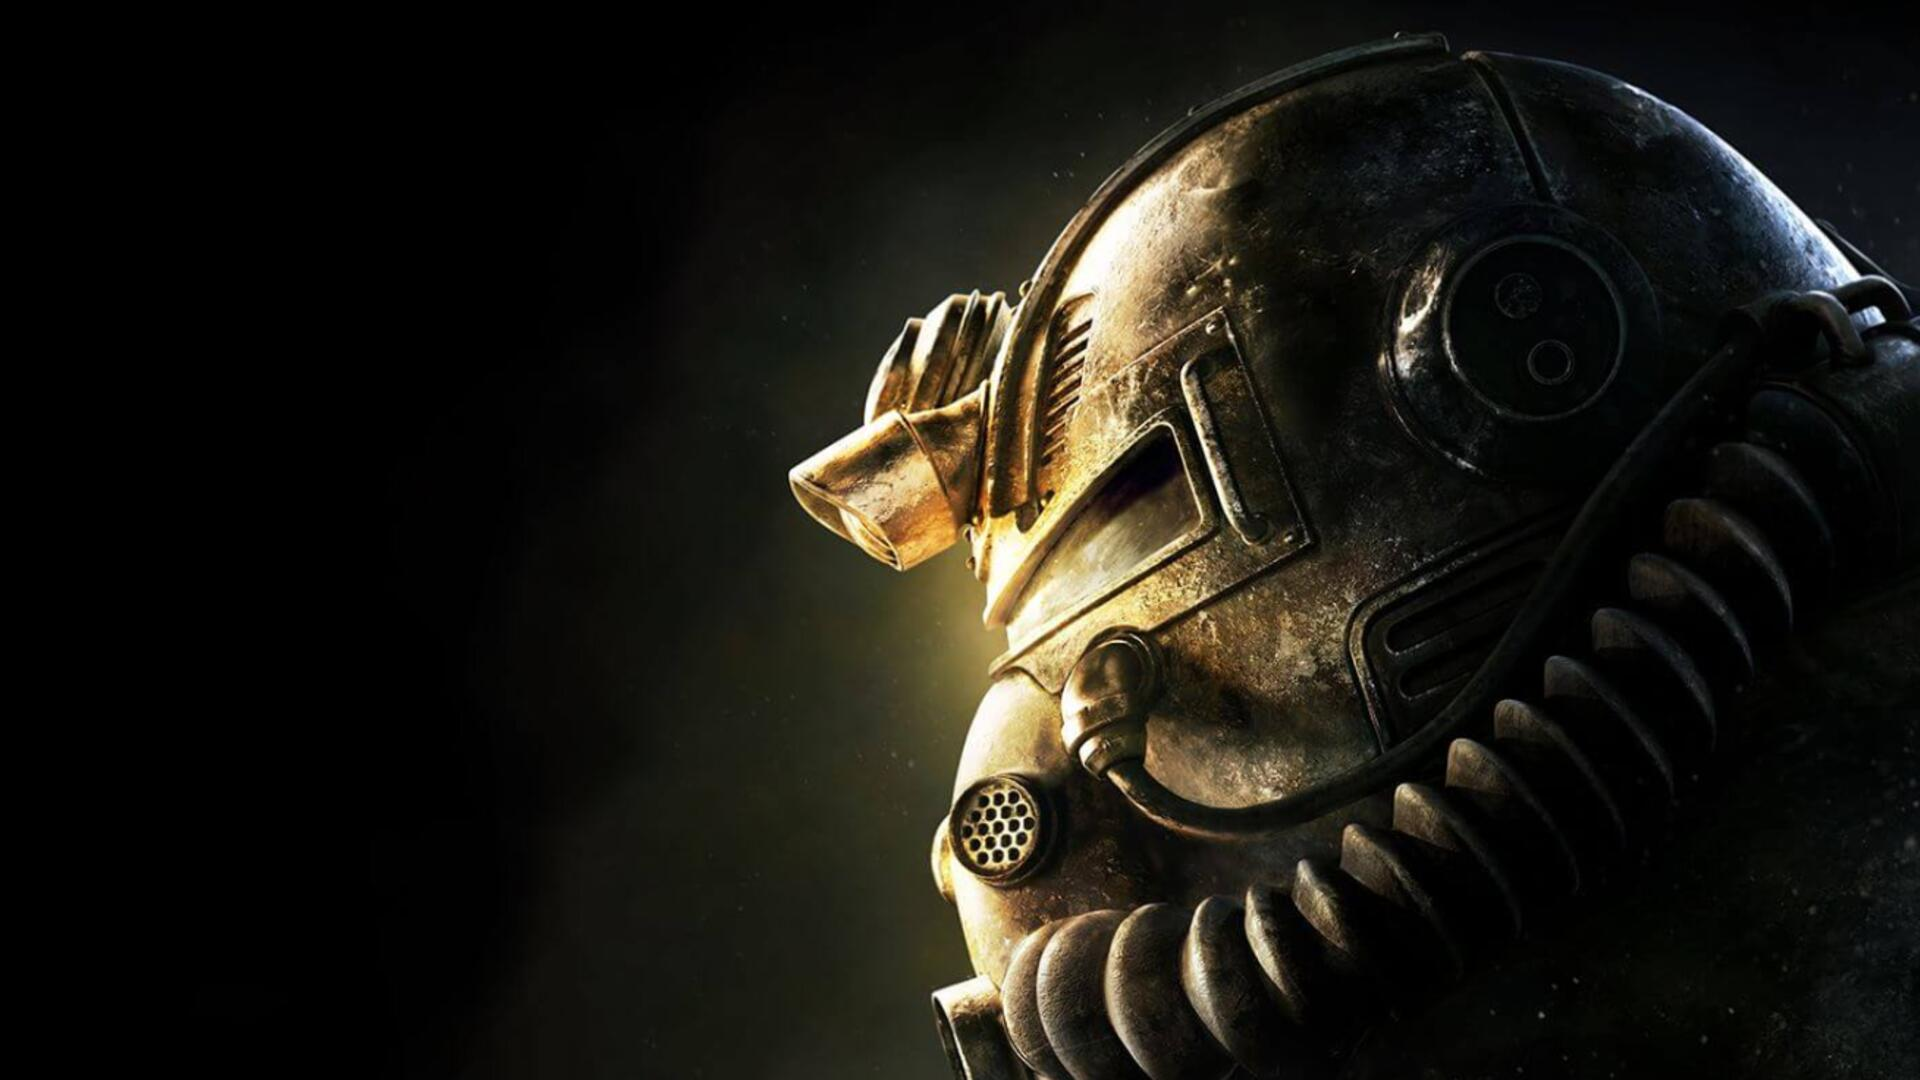 Fallout 76: Five Big Questions After the First Day of the Beta